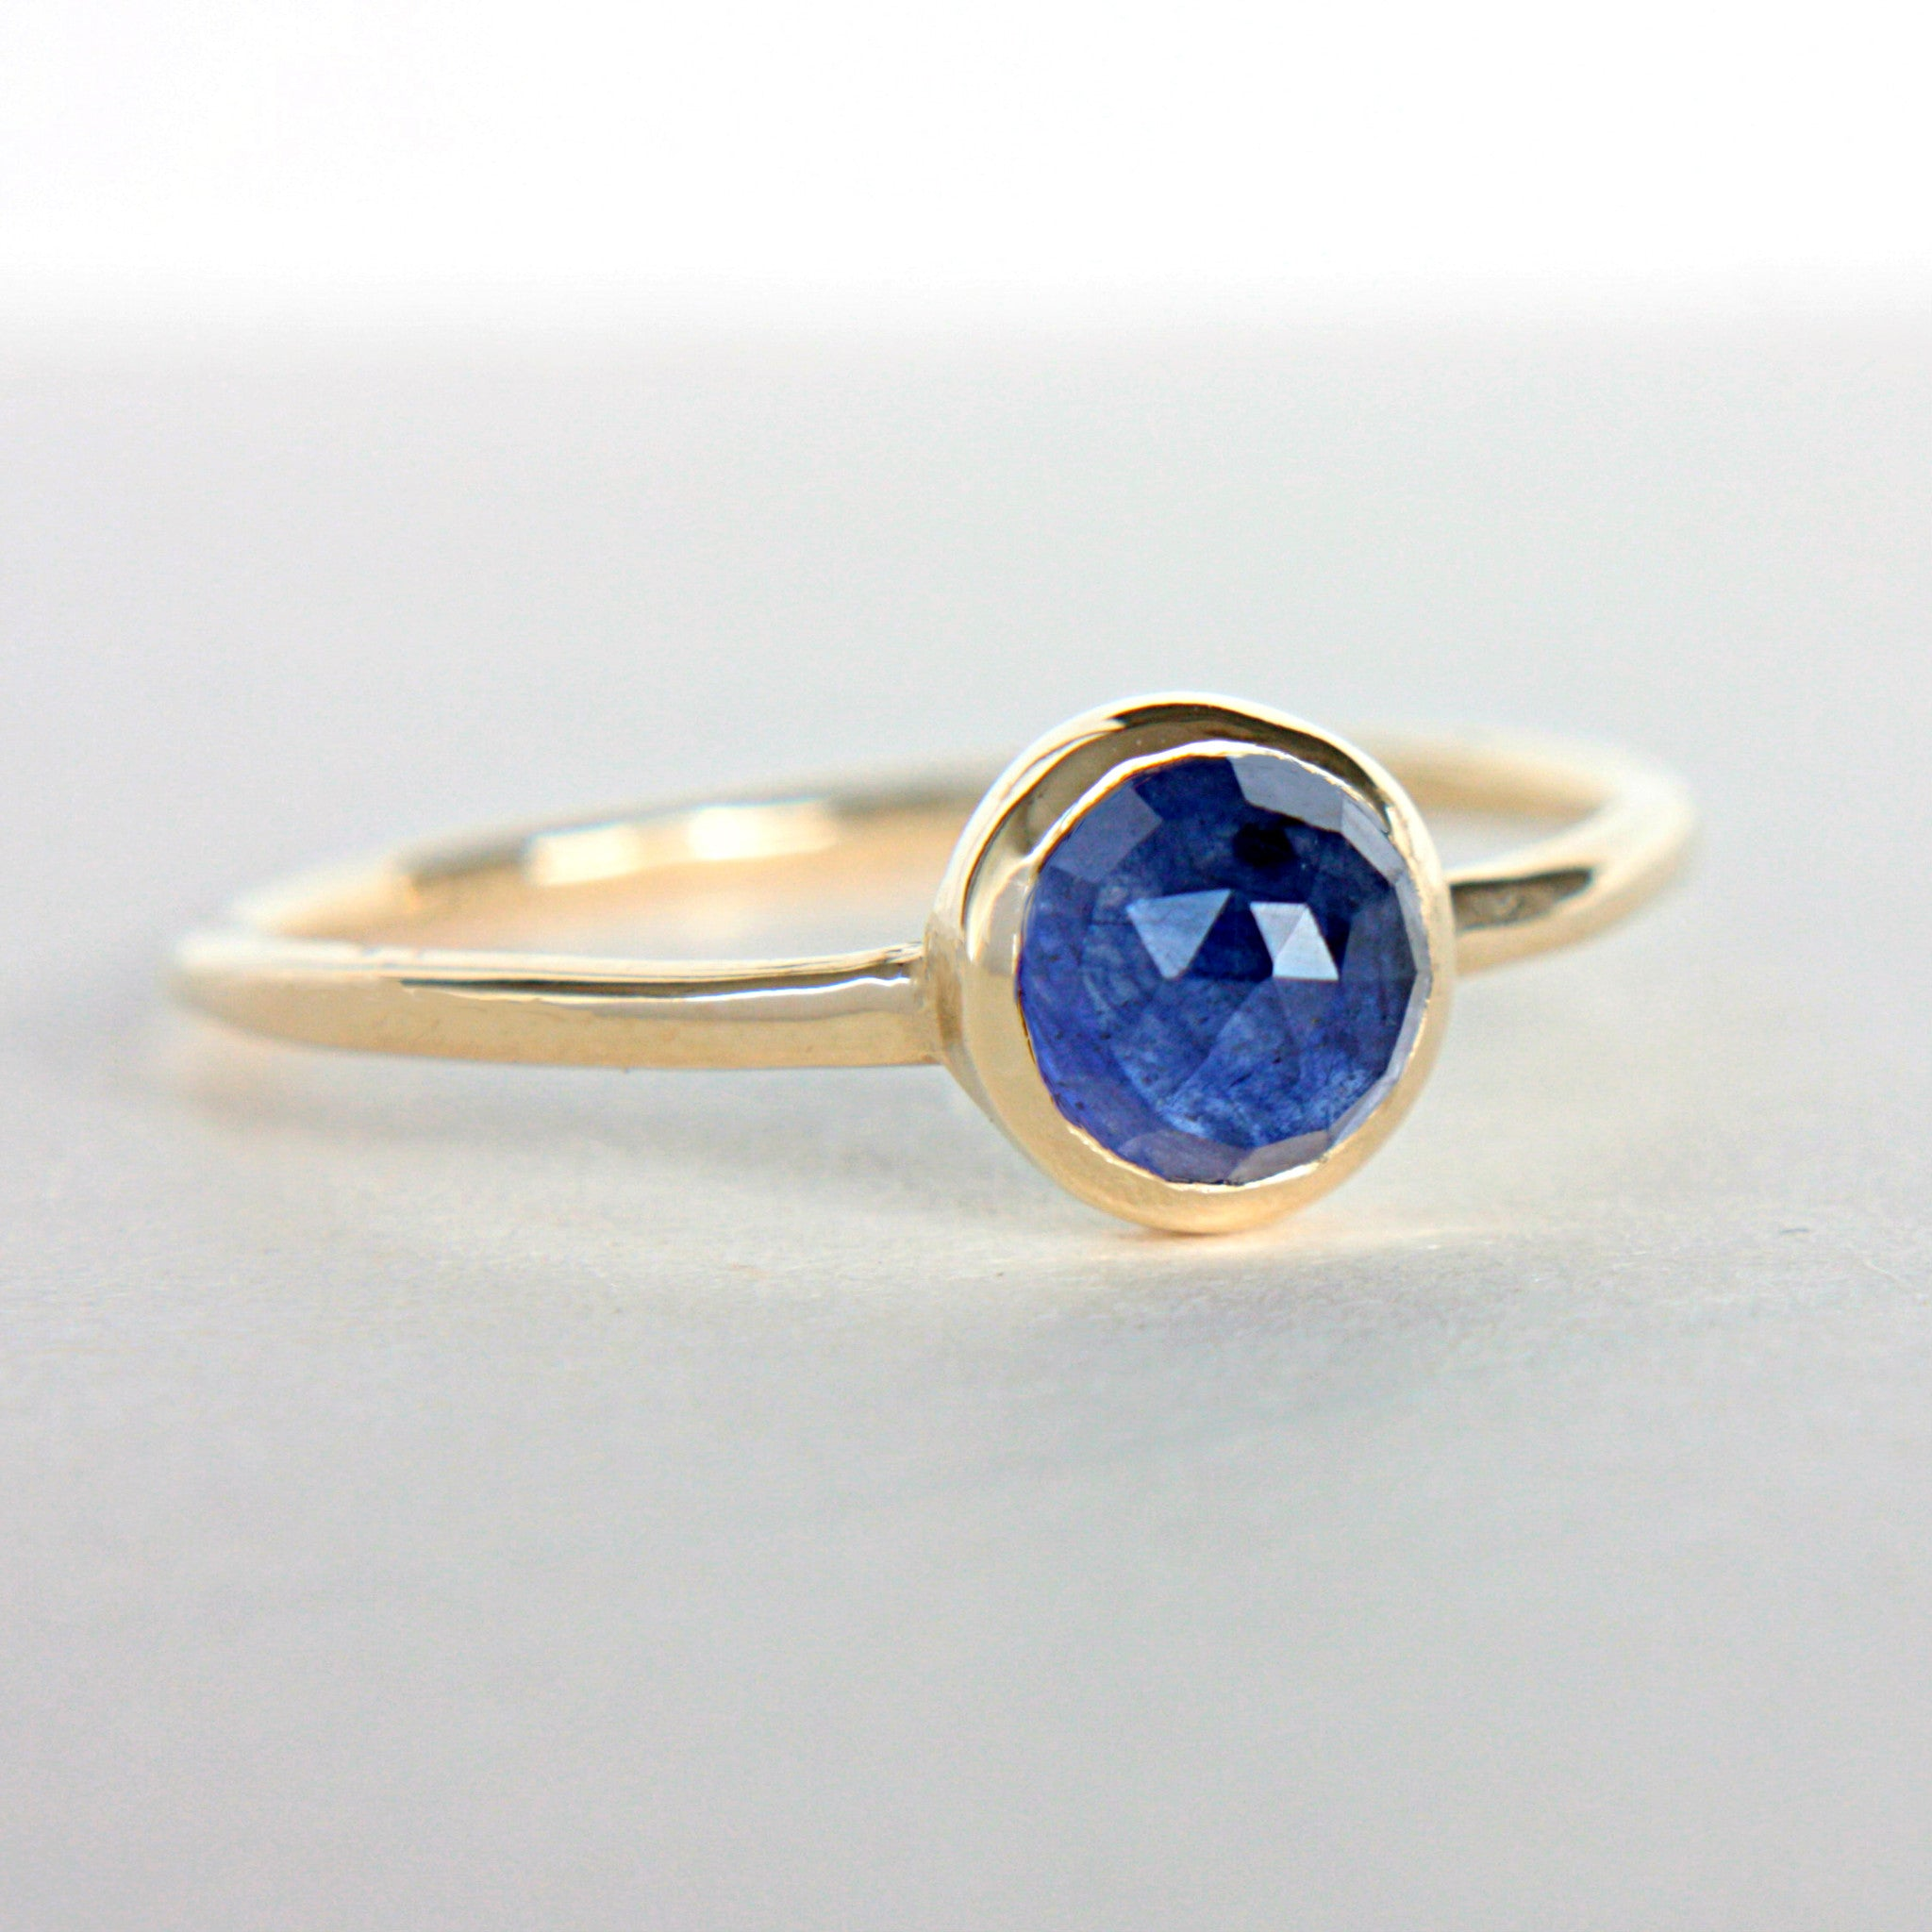 Blue Sapphire Rose Cut 14k Gold Ring - Manari Design